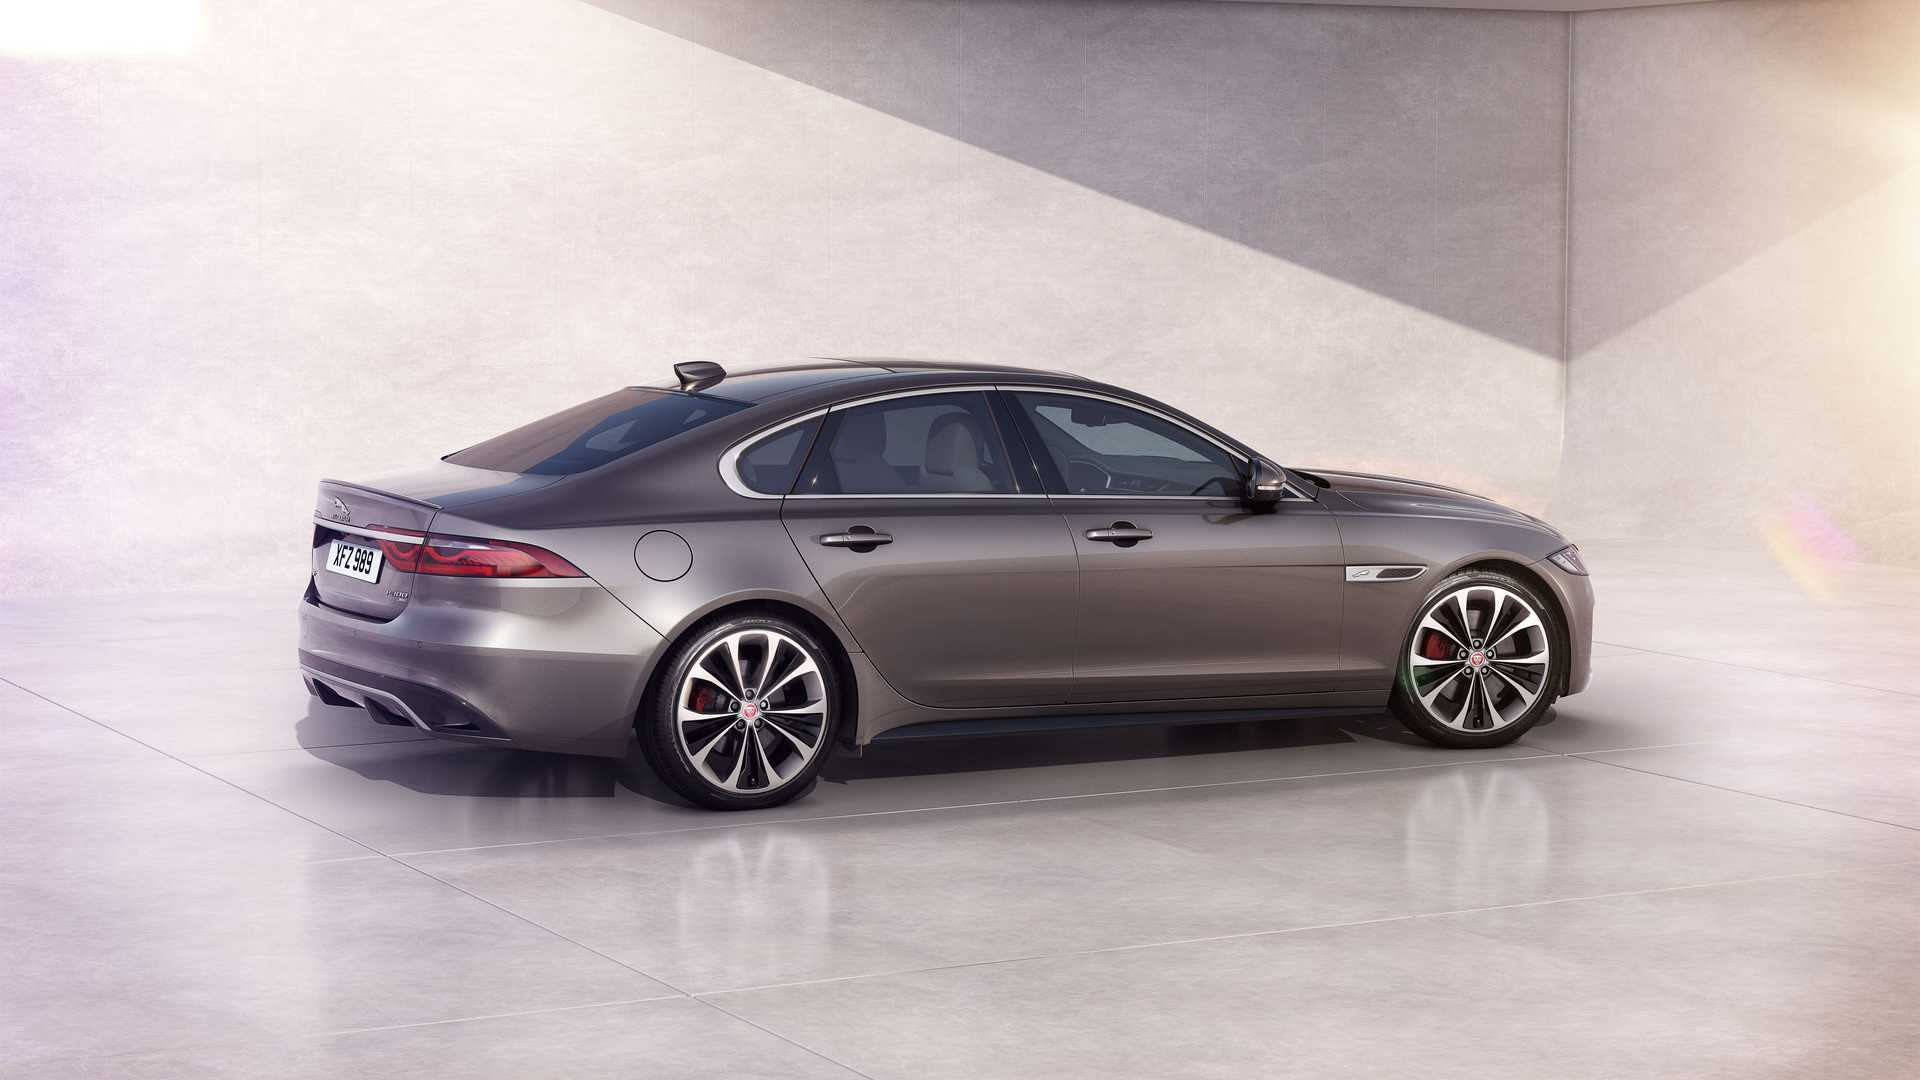 2021 Jaguar XF Mid-Cycle Refresh Revealed With Major ...